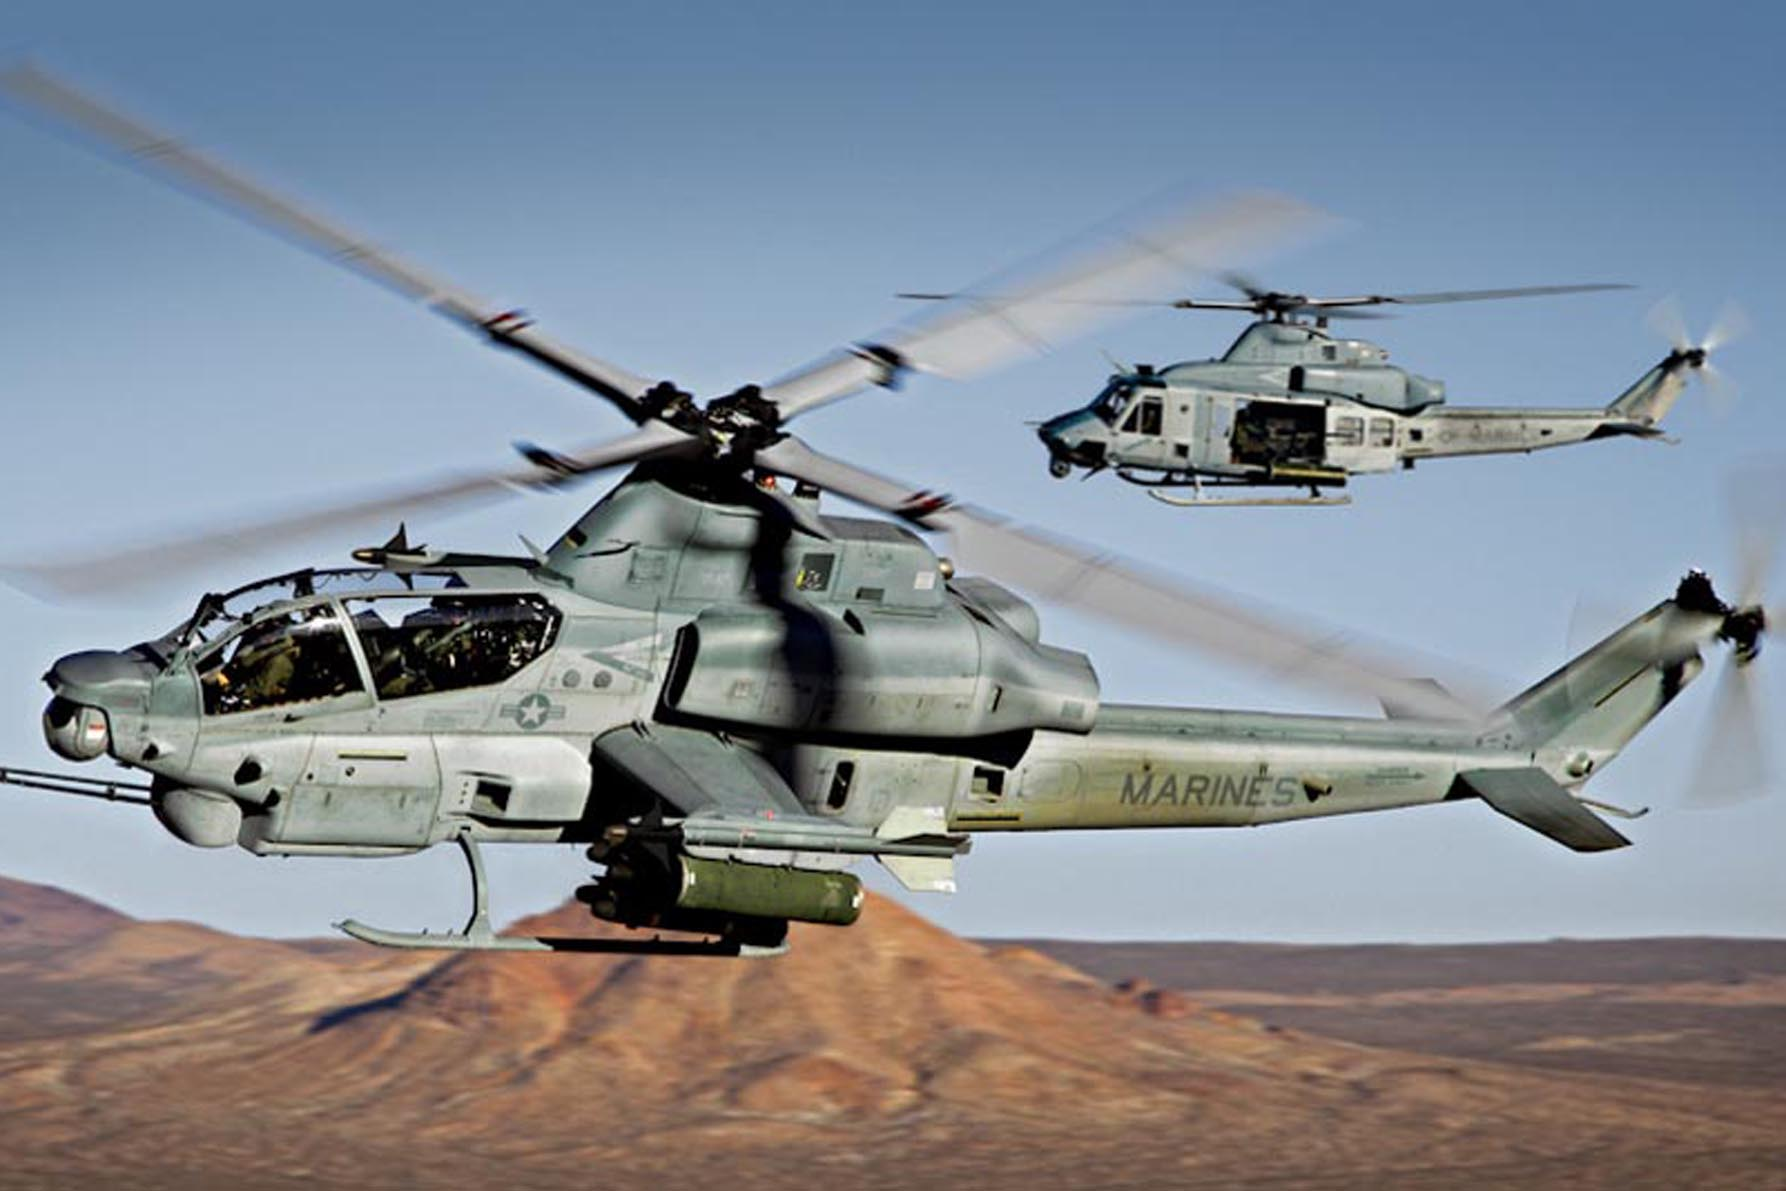 Turkey requests AH-1W helicopters